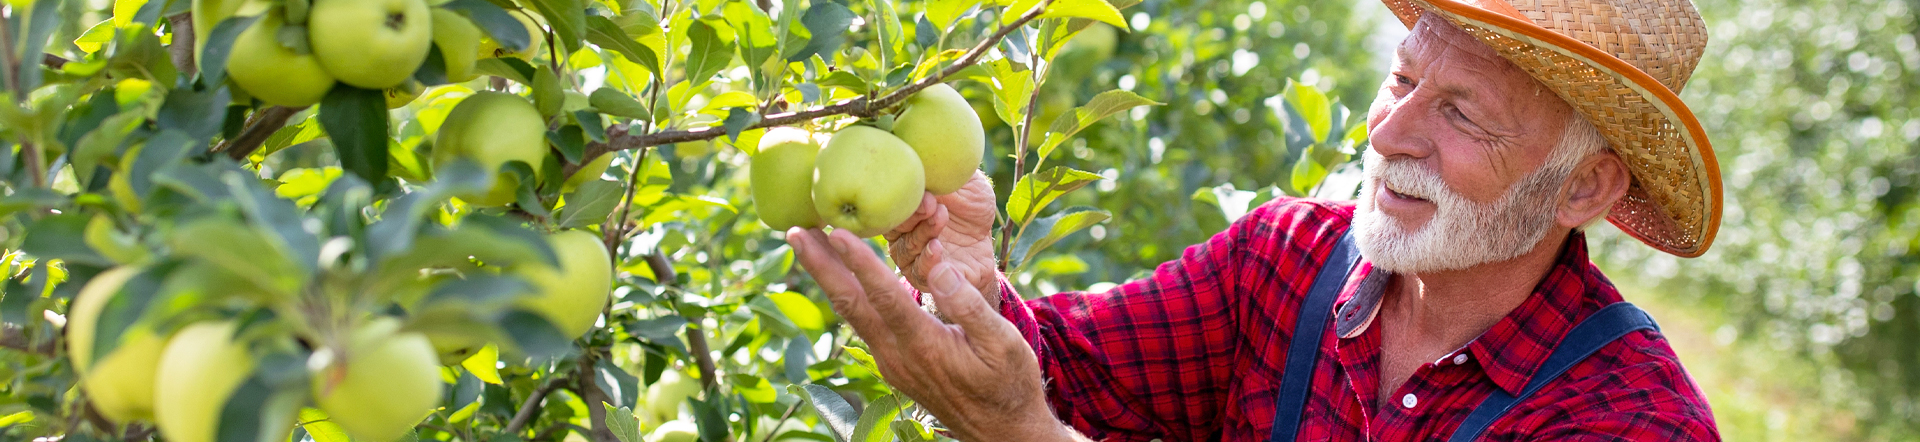 man looking at green apples on the tree